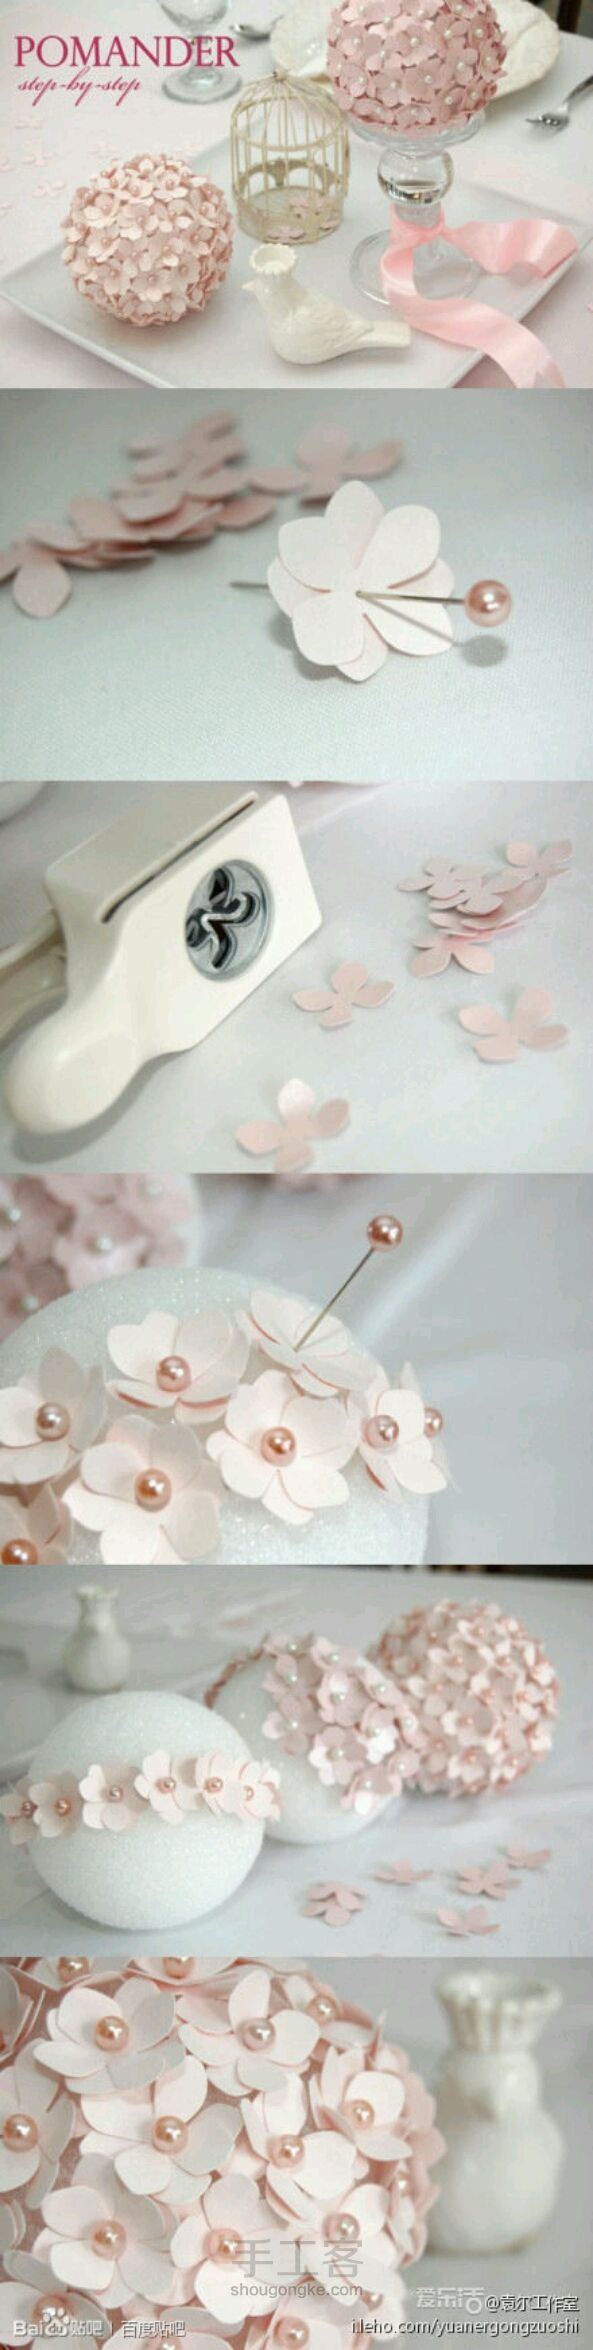 Paper flower balls - for centerpieces or flower girl bouquets! DIY